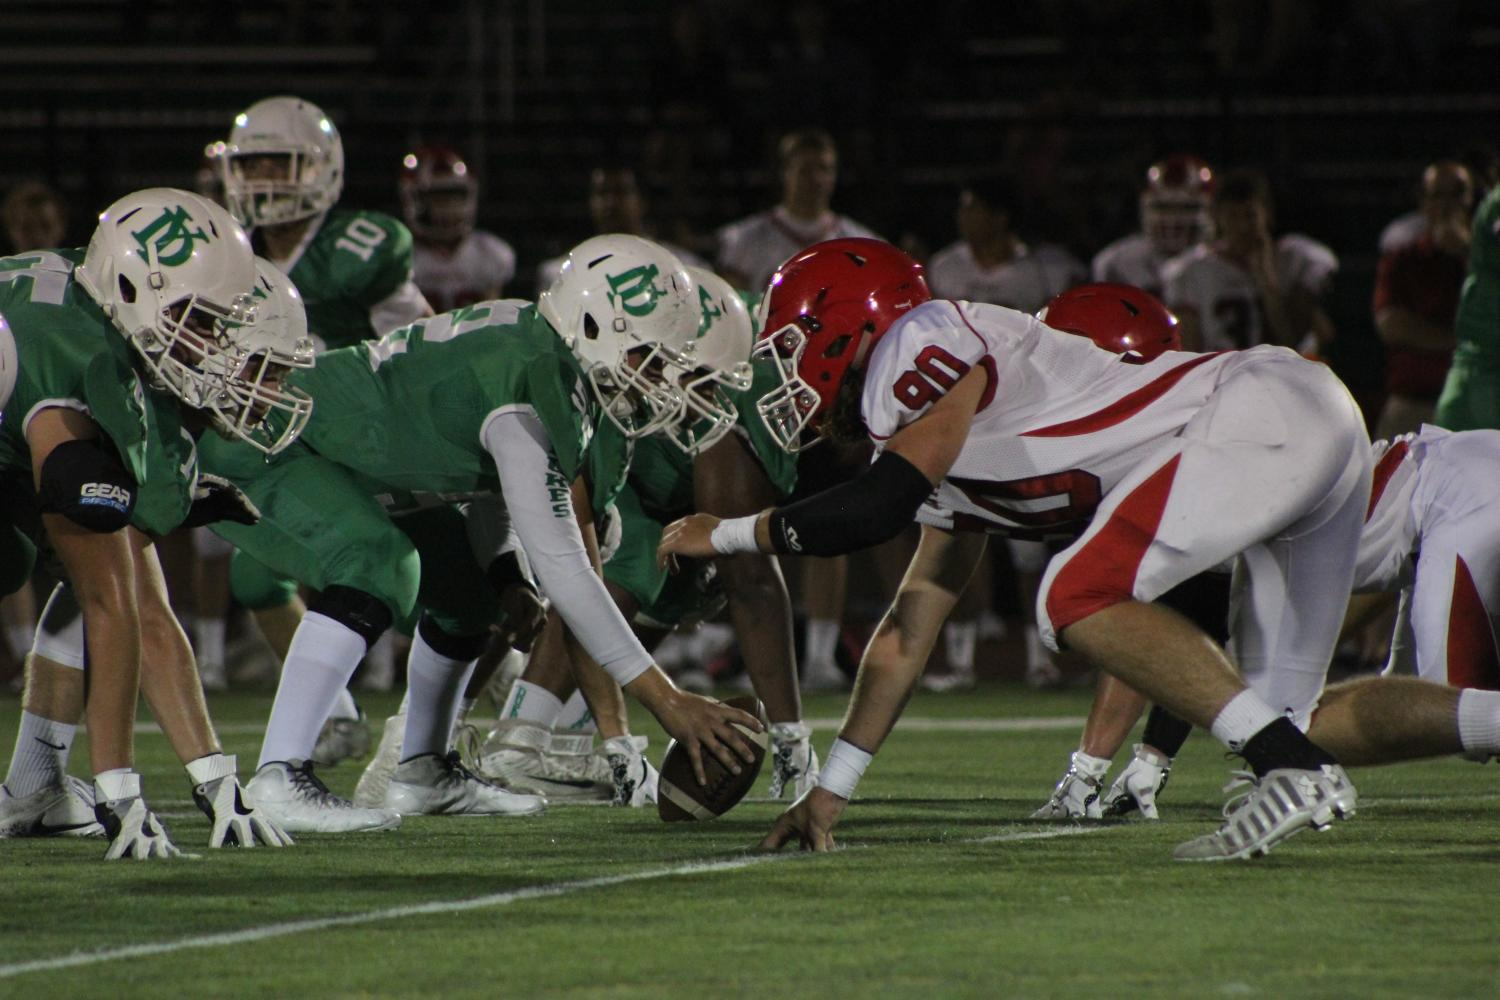 York High School and Hinsdale Central get in their positions for the next line of scrimmage at the Homecoming football game. Fri., Sept. 22, 2017